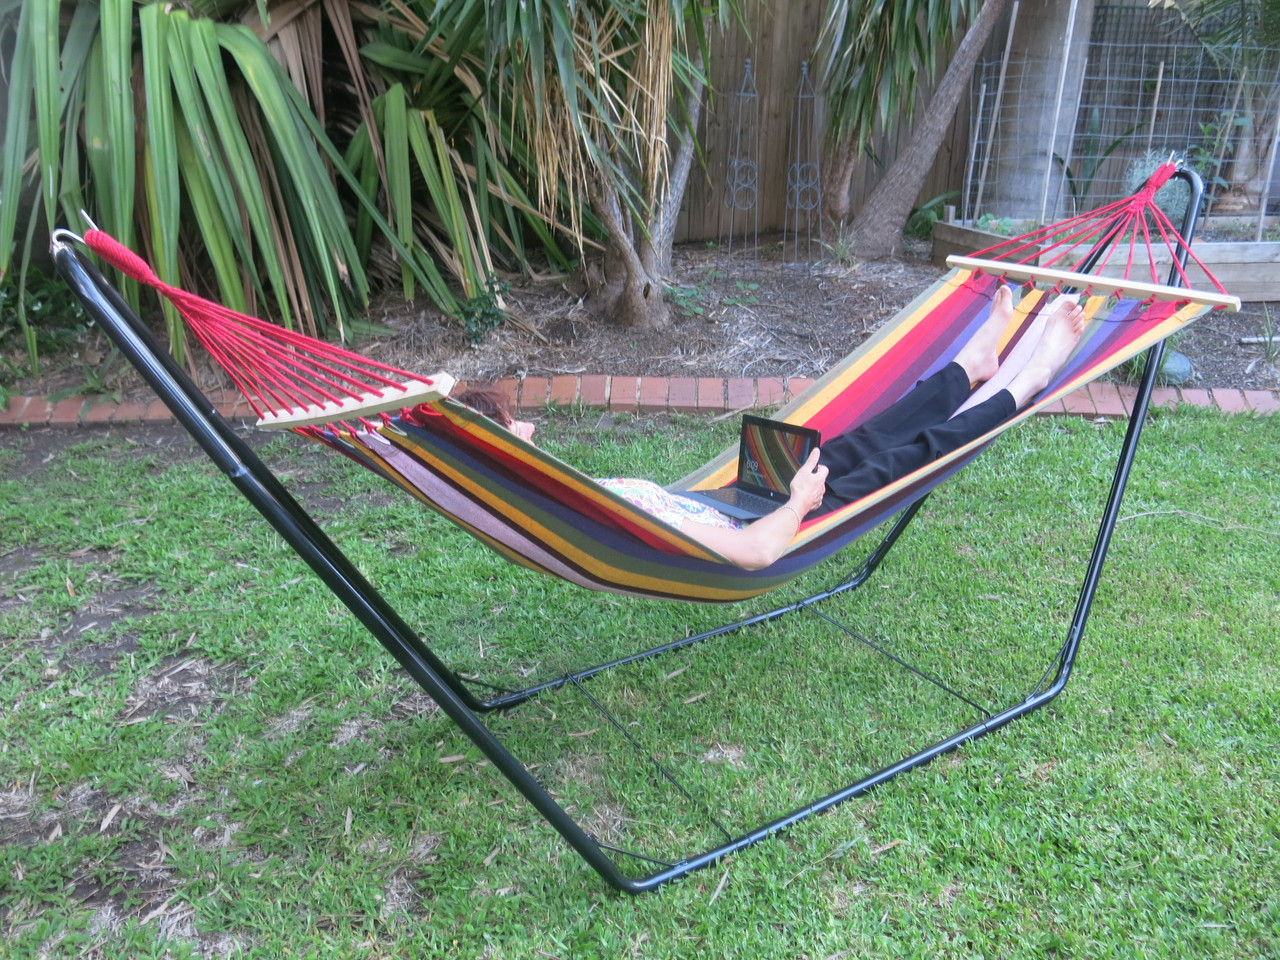 bo set  small multi colour canvas hammock with spreader bar and stand free standing hammock  small multi colour spreader bar canvas      rh   heavenlyhammocks   au